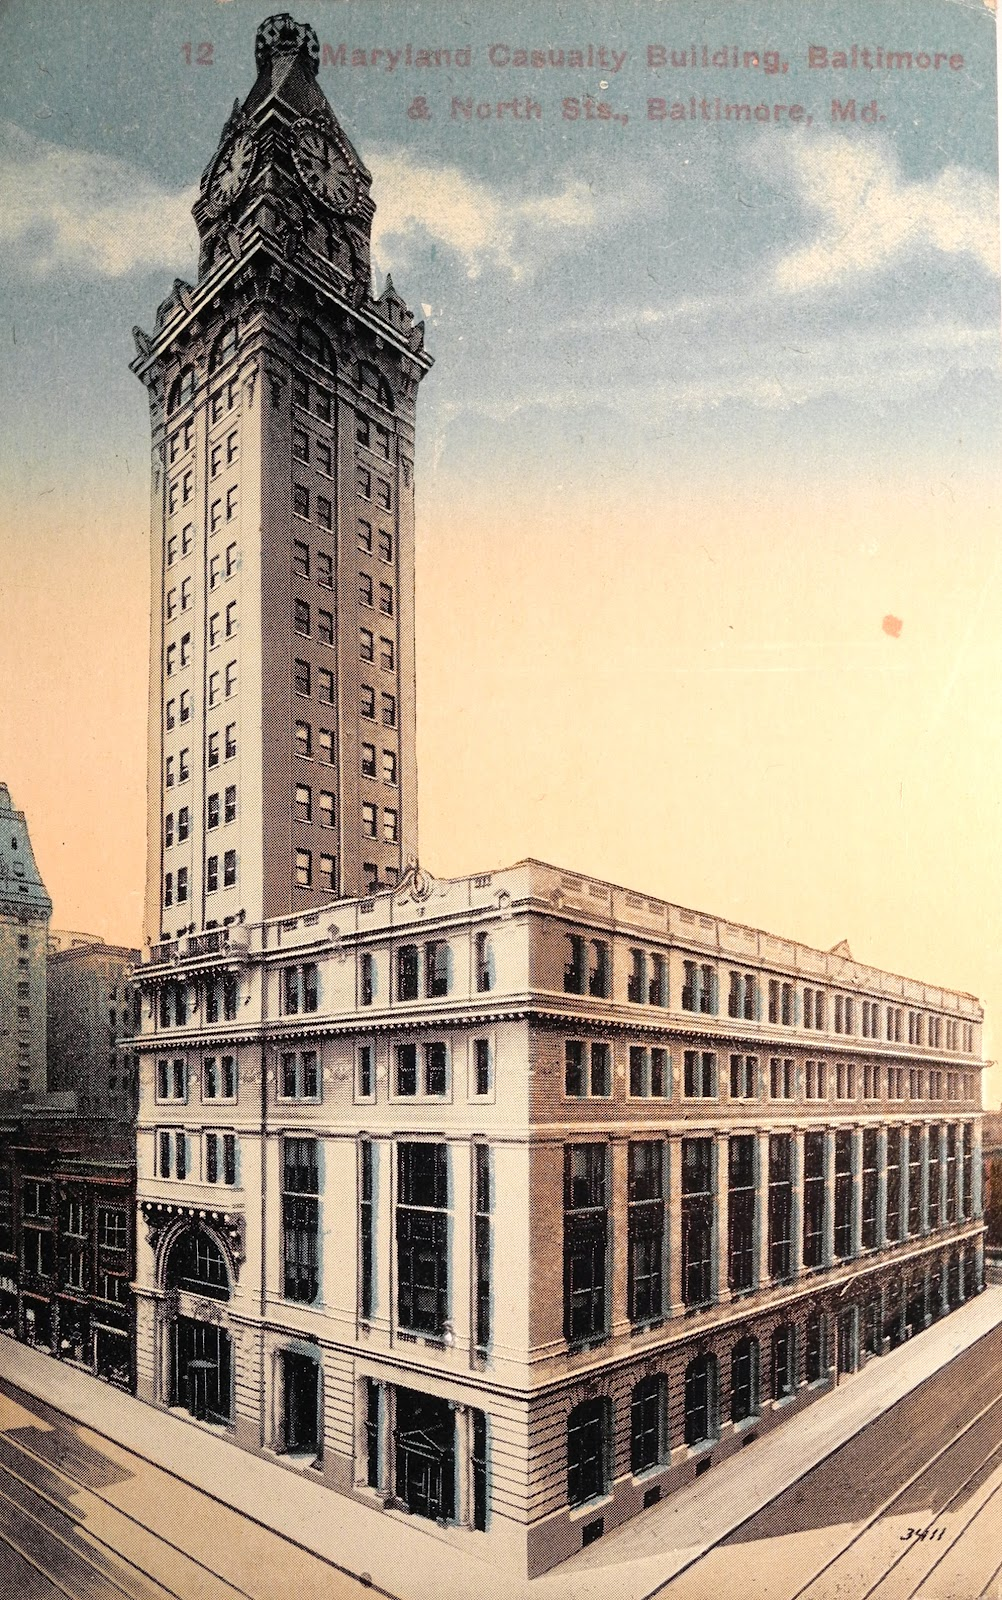 Tower building or maryland casualty building baltimore for Builders in md